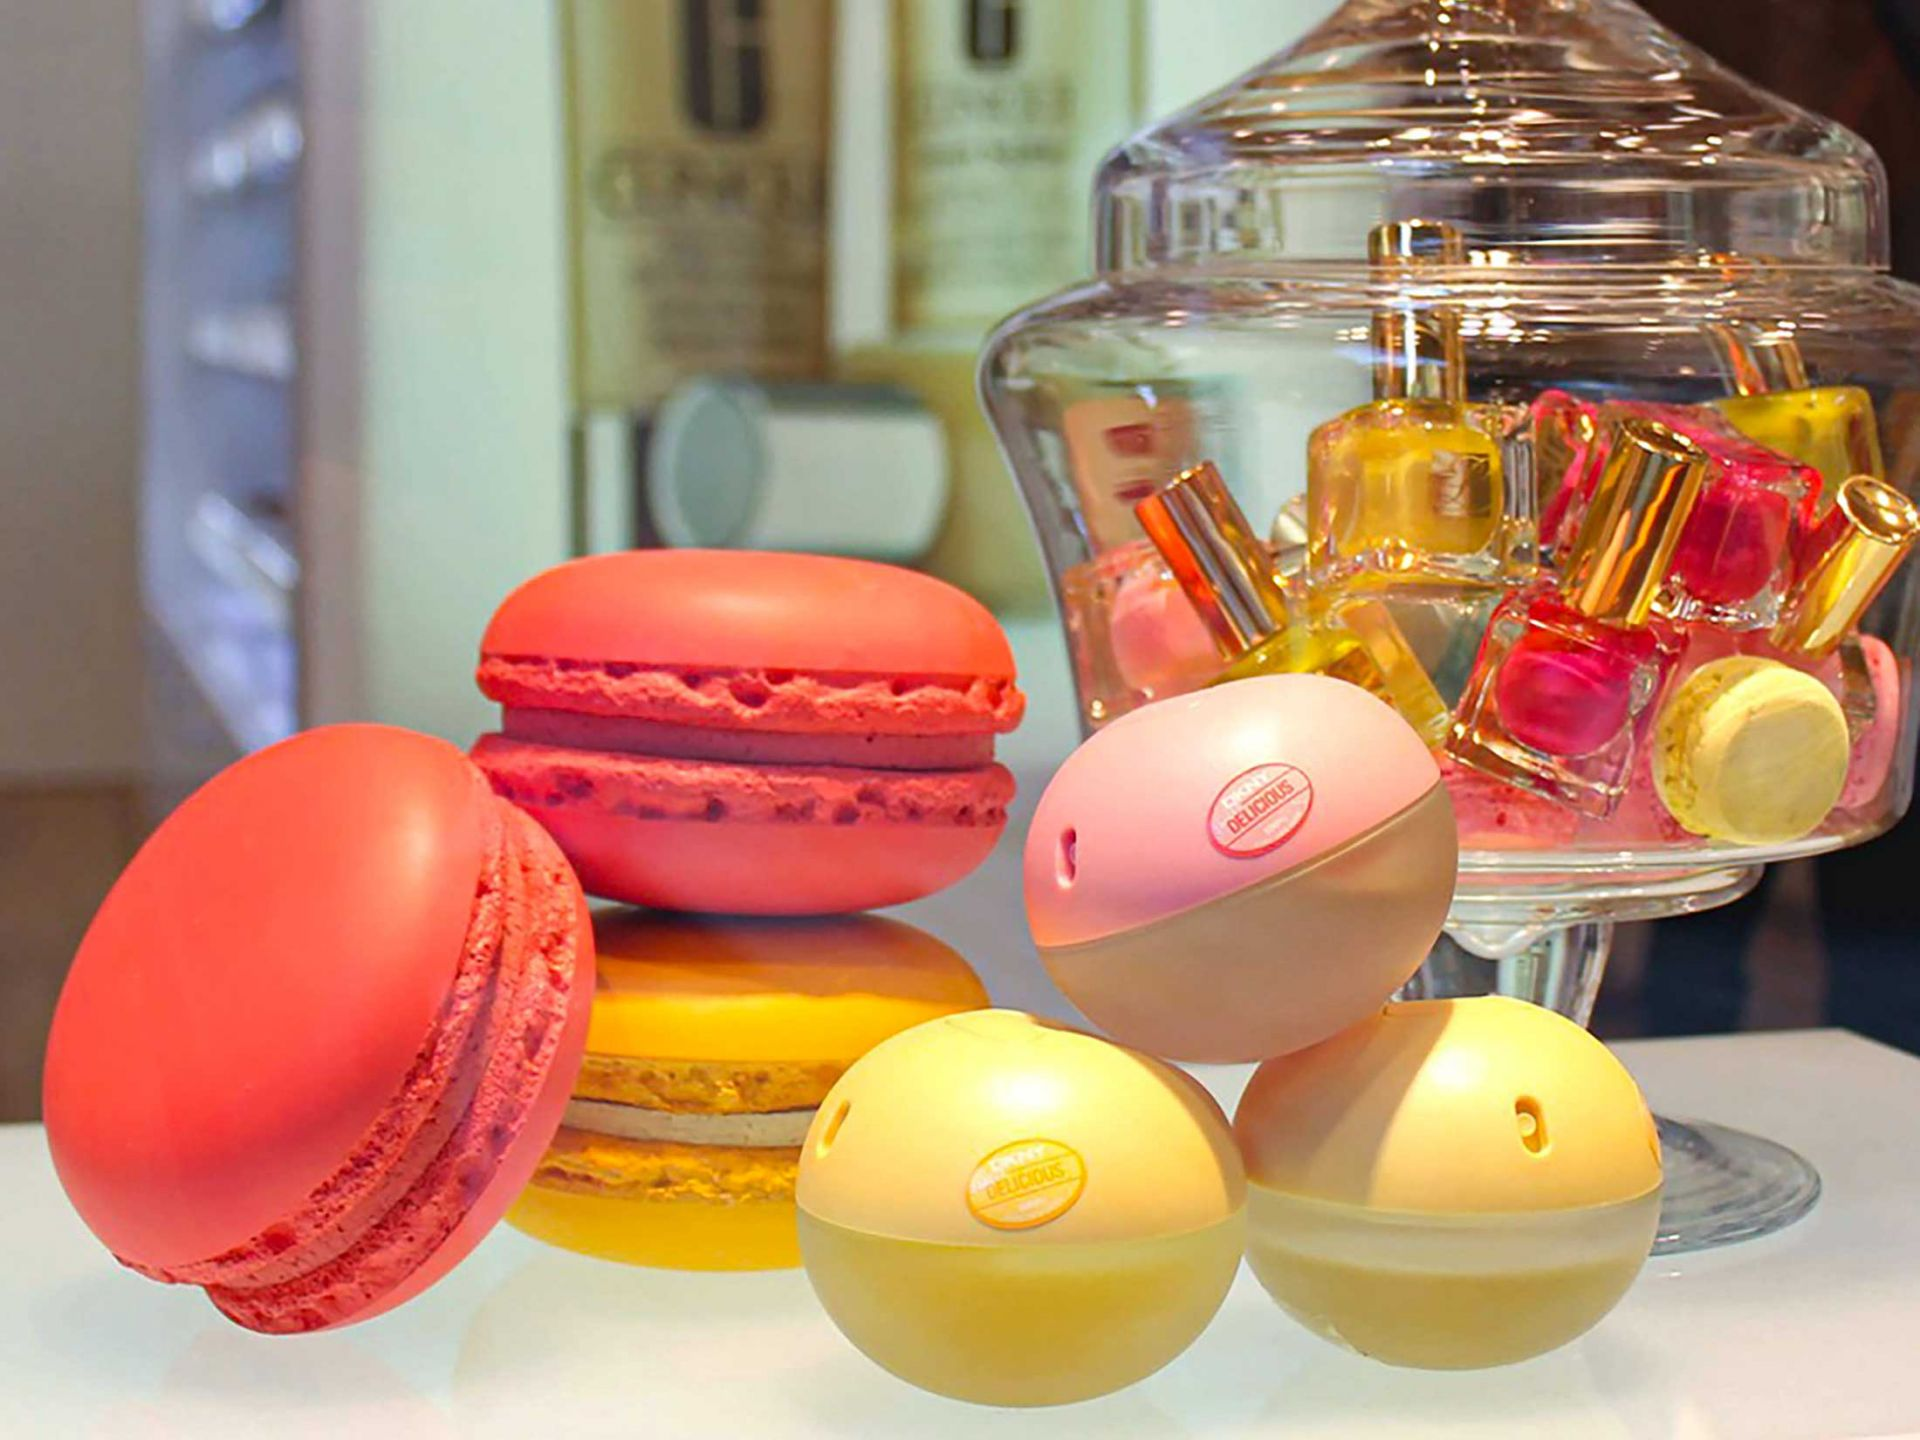 Macaron props in a promotional display with perfume and nail varnish.